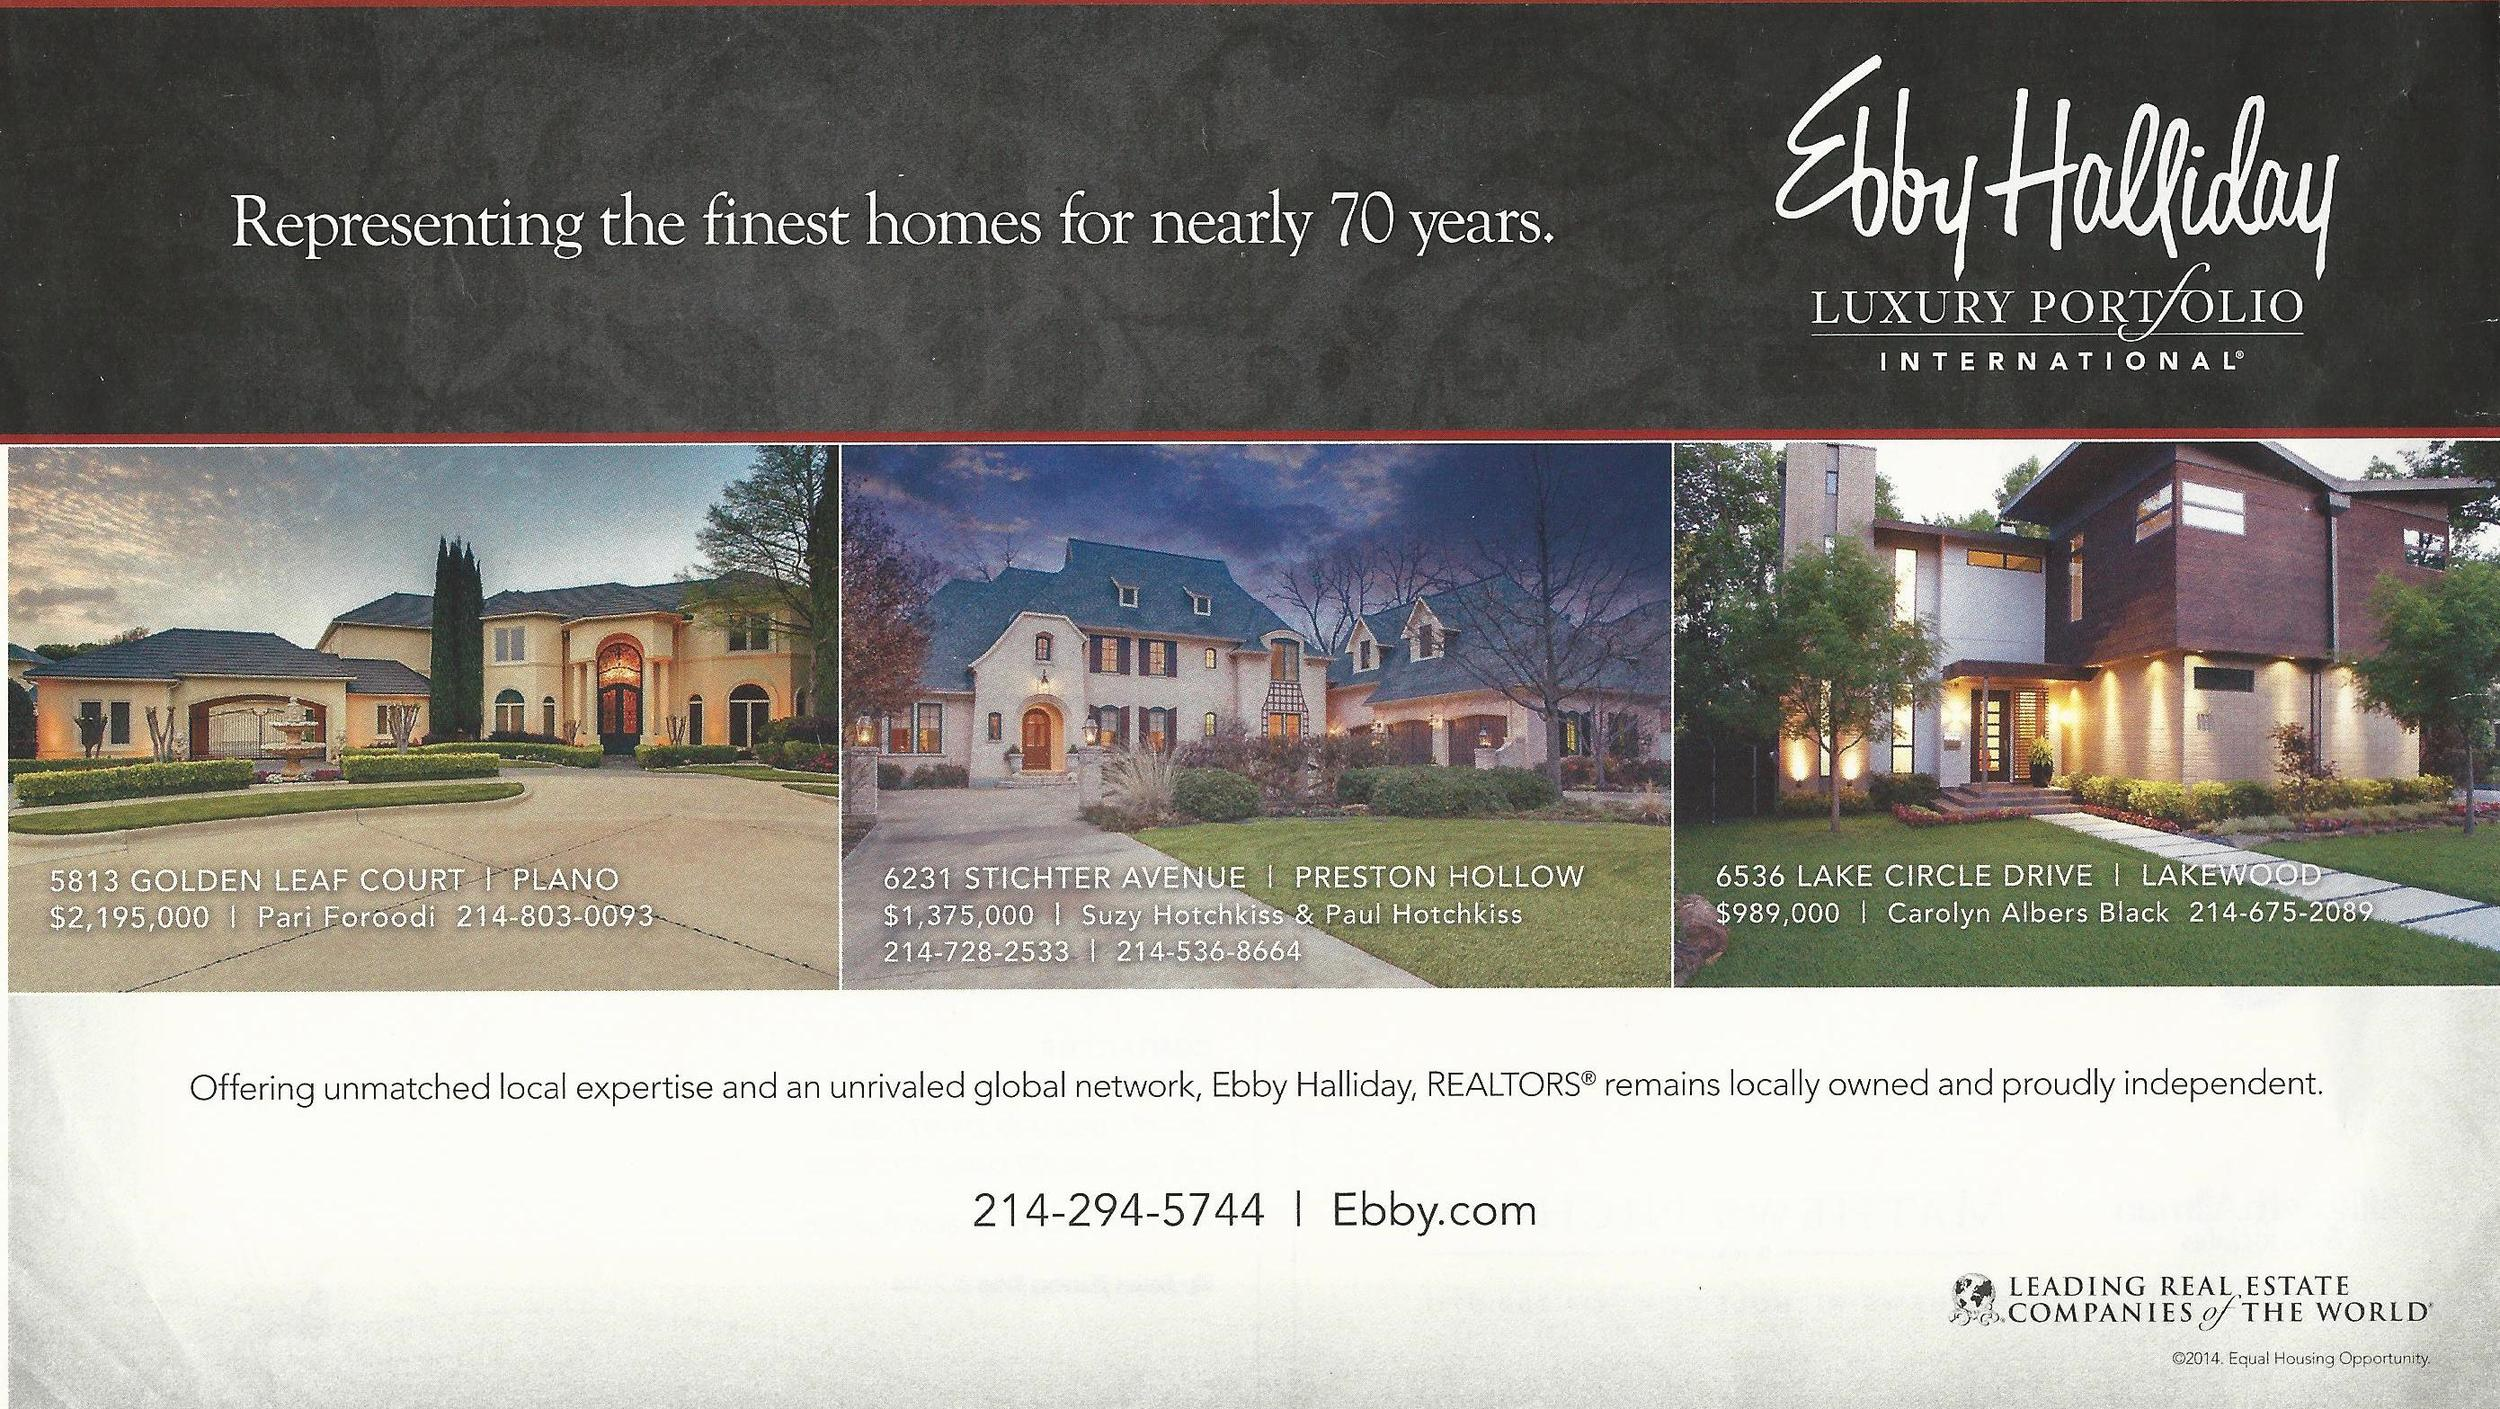 An advertisement that was featured in Grande Vie magazine featuring one of our listings. Our listing appears in the middle.